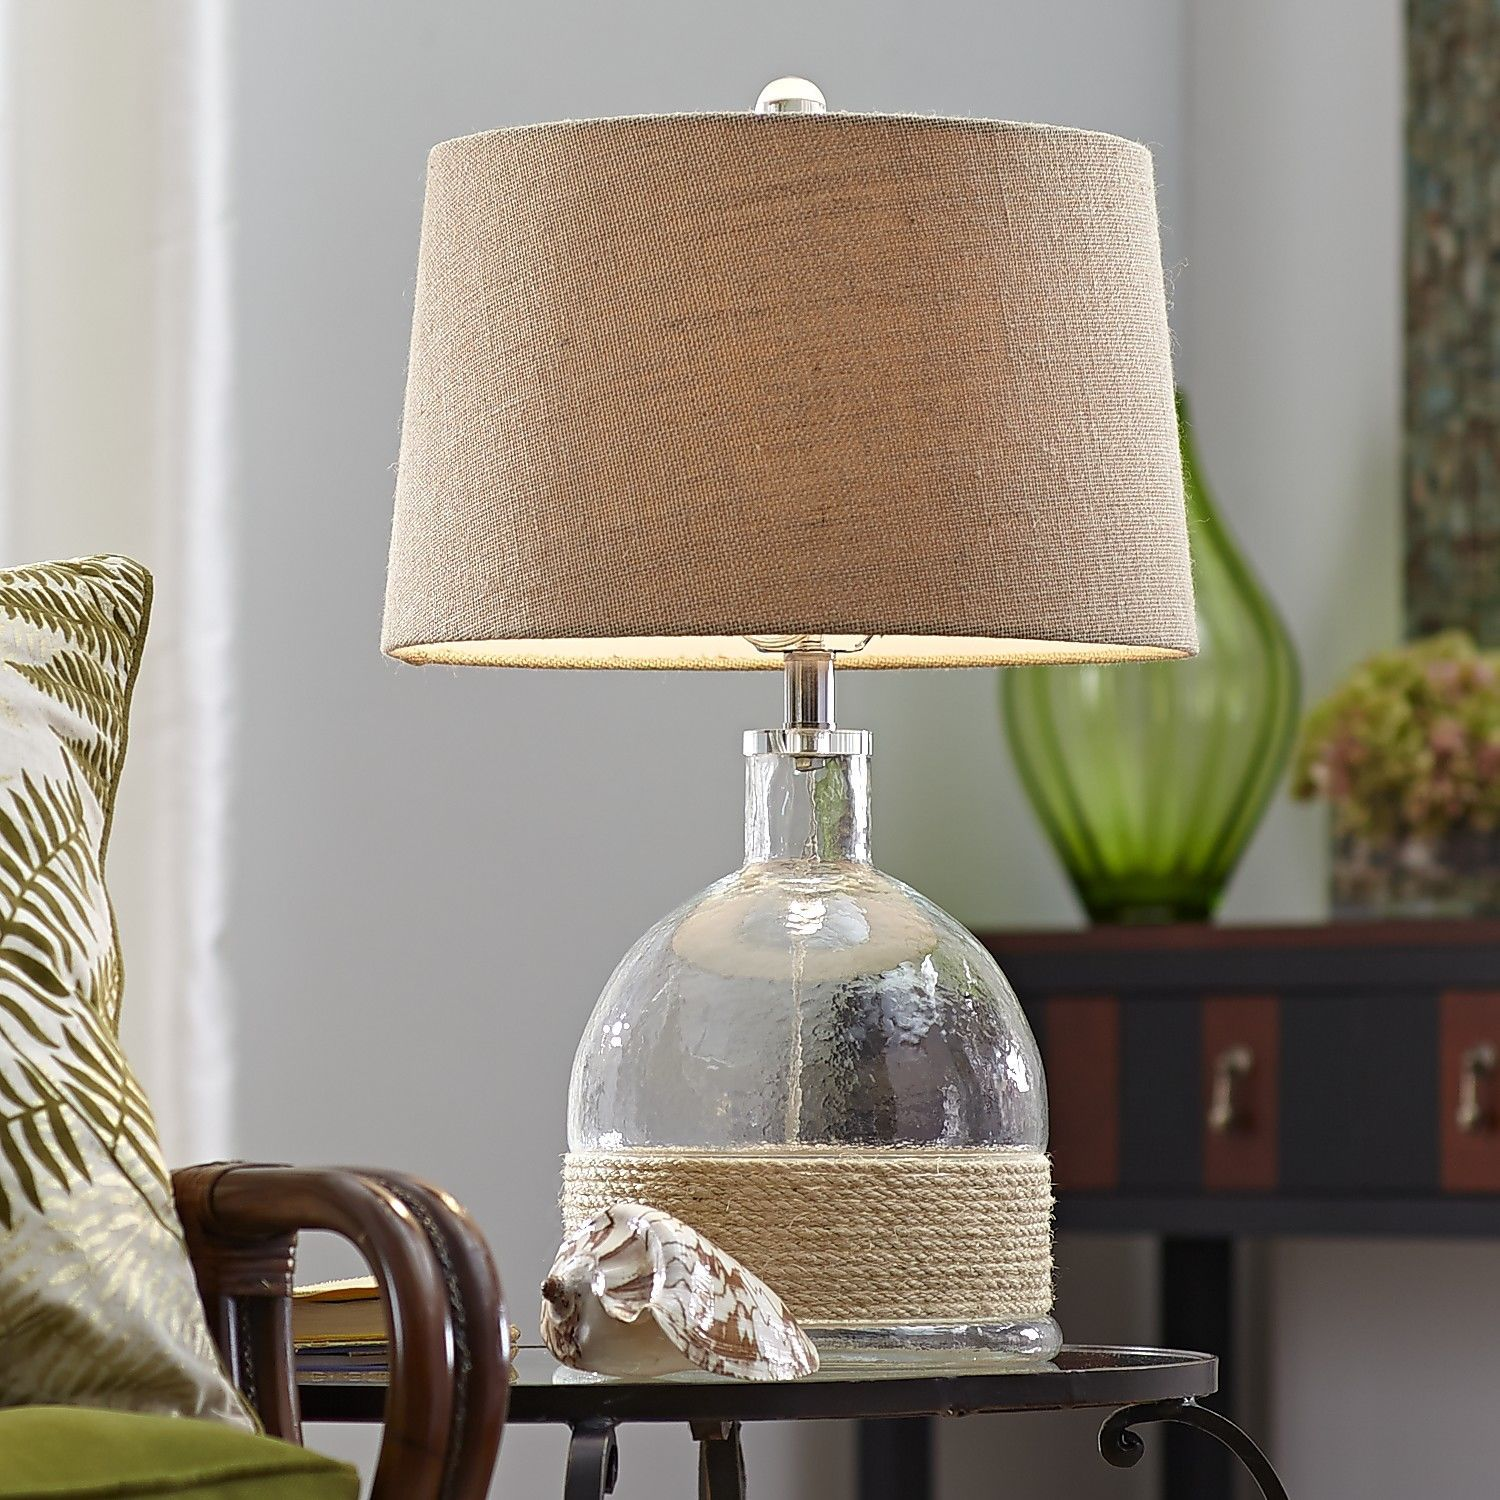 Pier One Table Lamps Endearing Rope & Glass Lamp  Pier 1 Imports  Beach House  Pinterest  Small Decorating Design